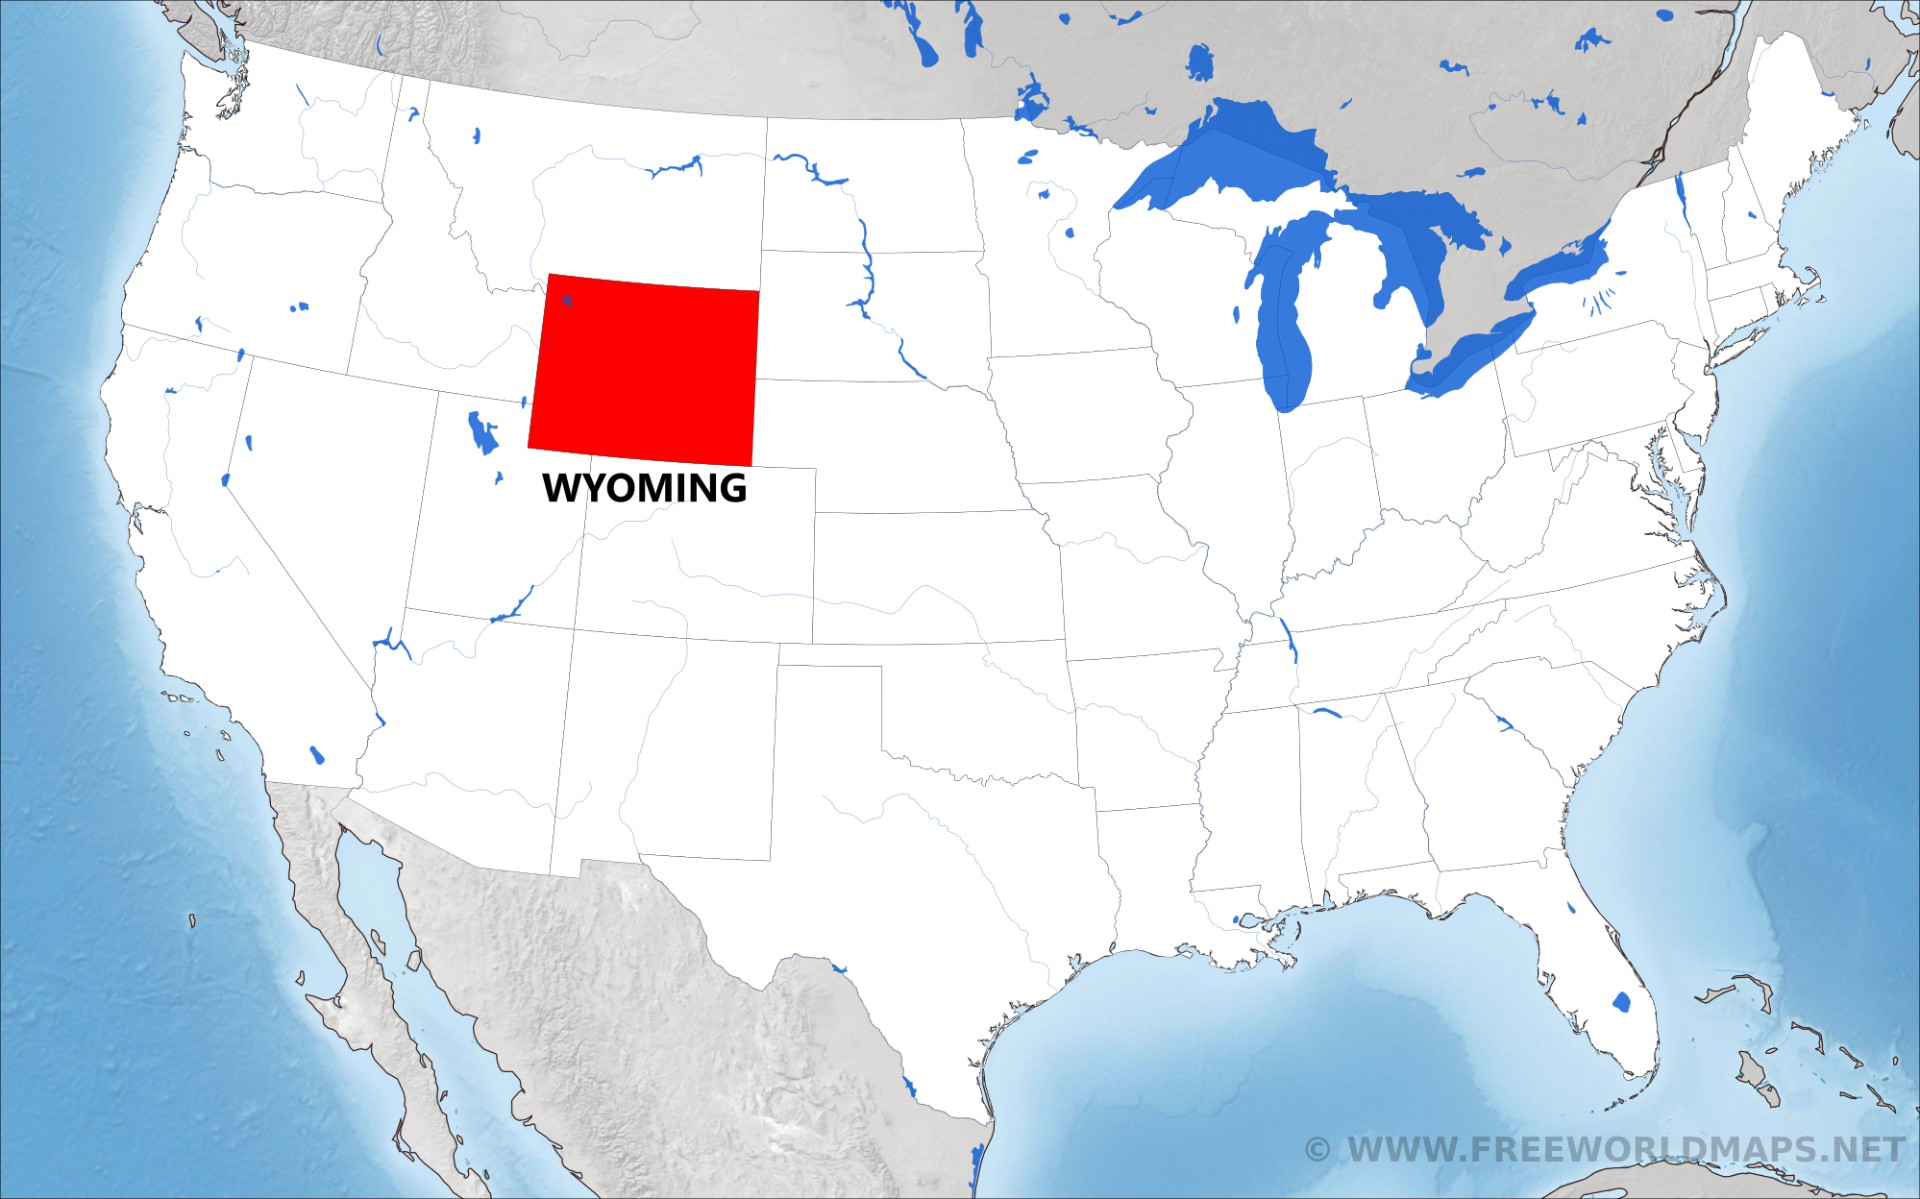 Where is Wyoming located on the map?